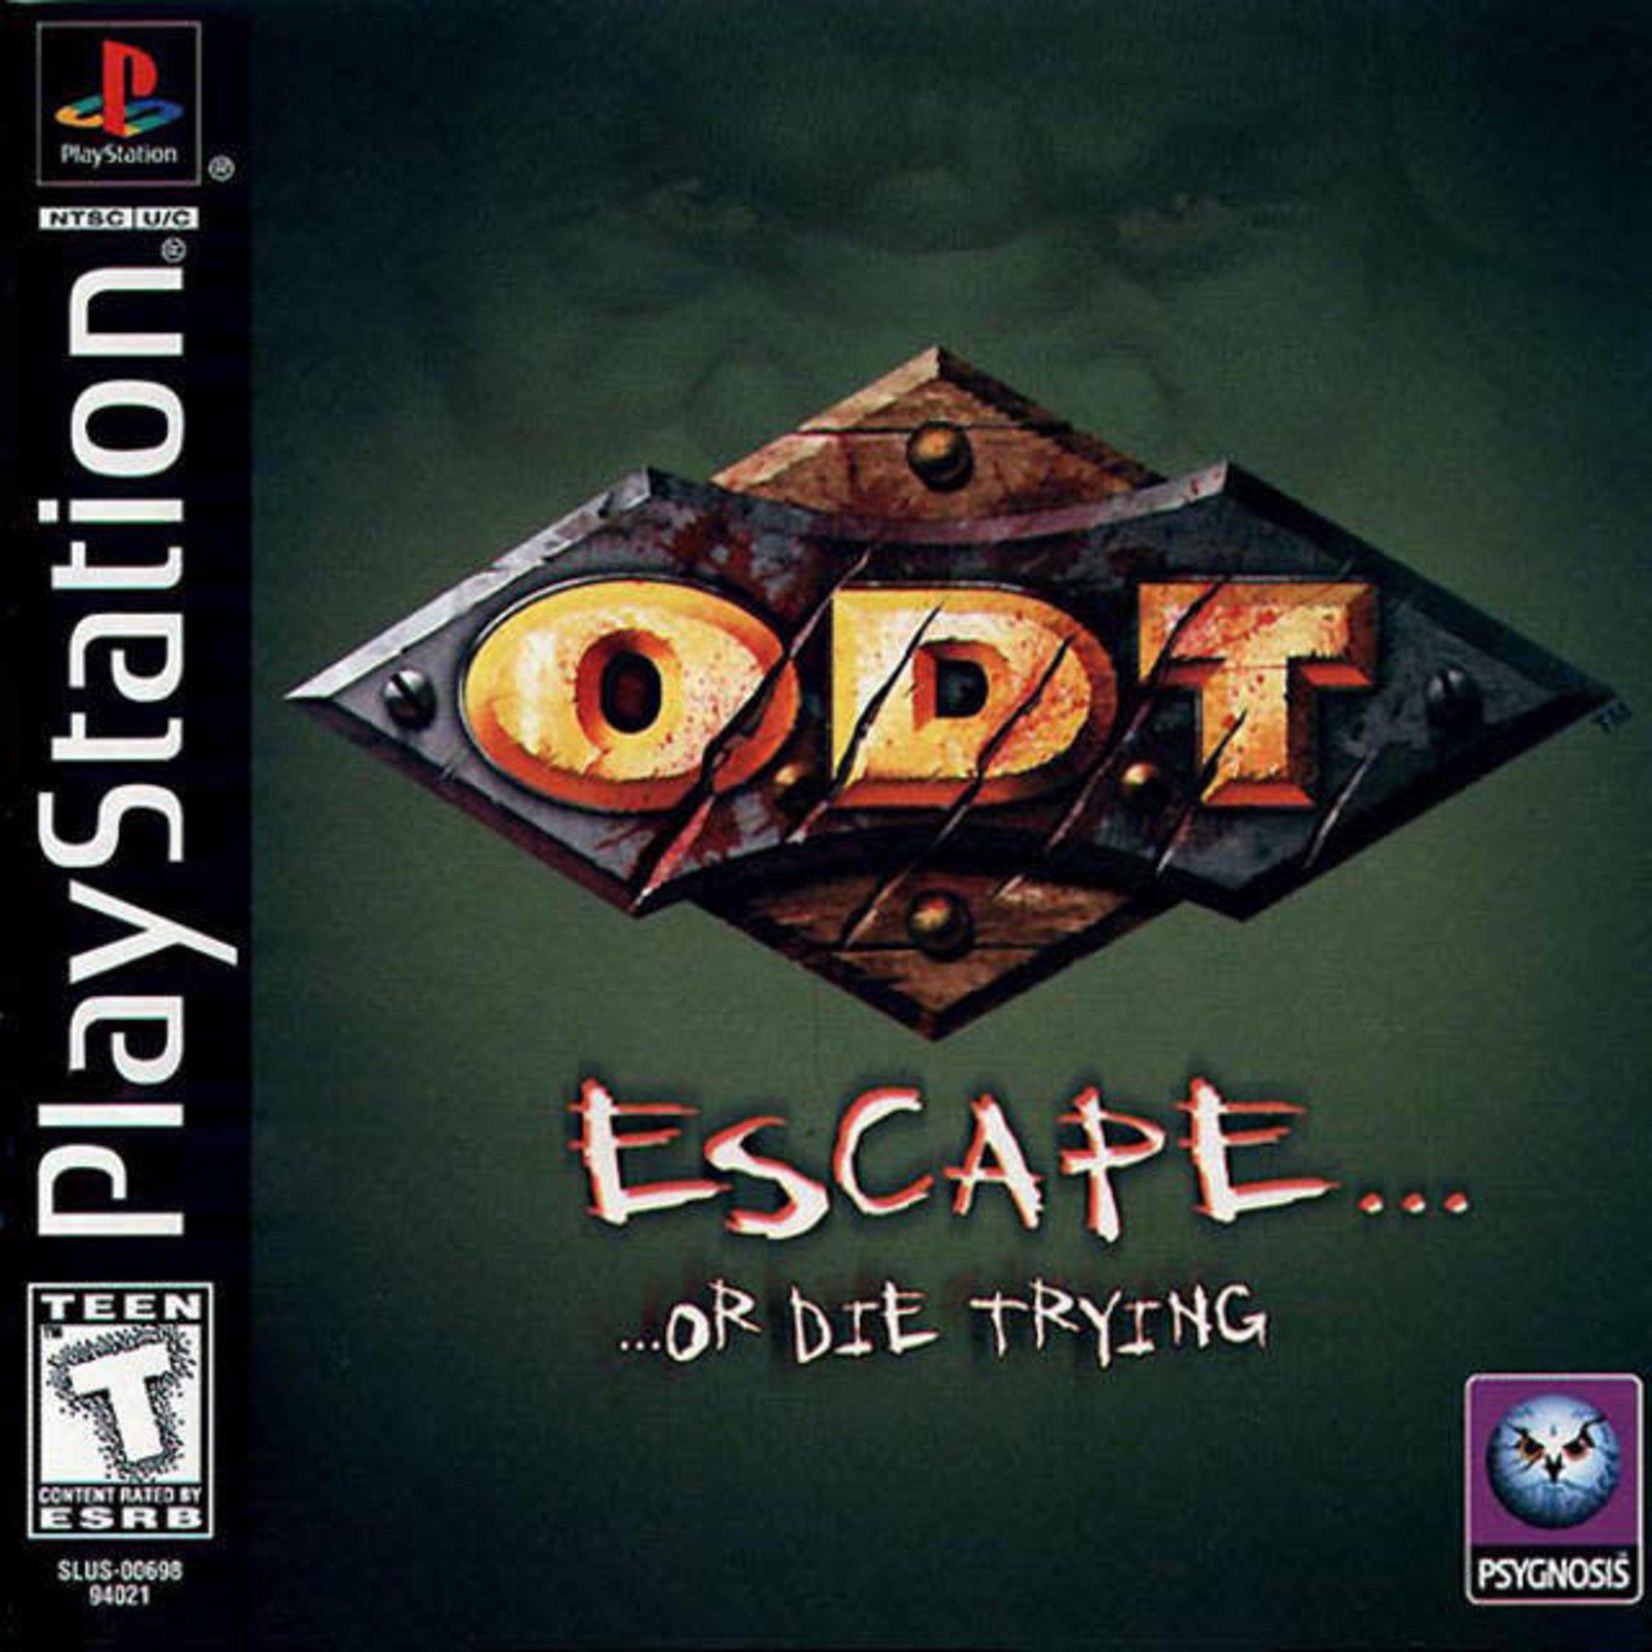 PS1U-O.D.T Escape or Die Trying